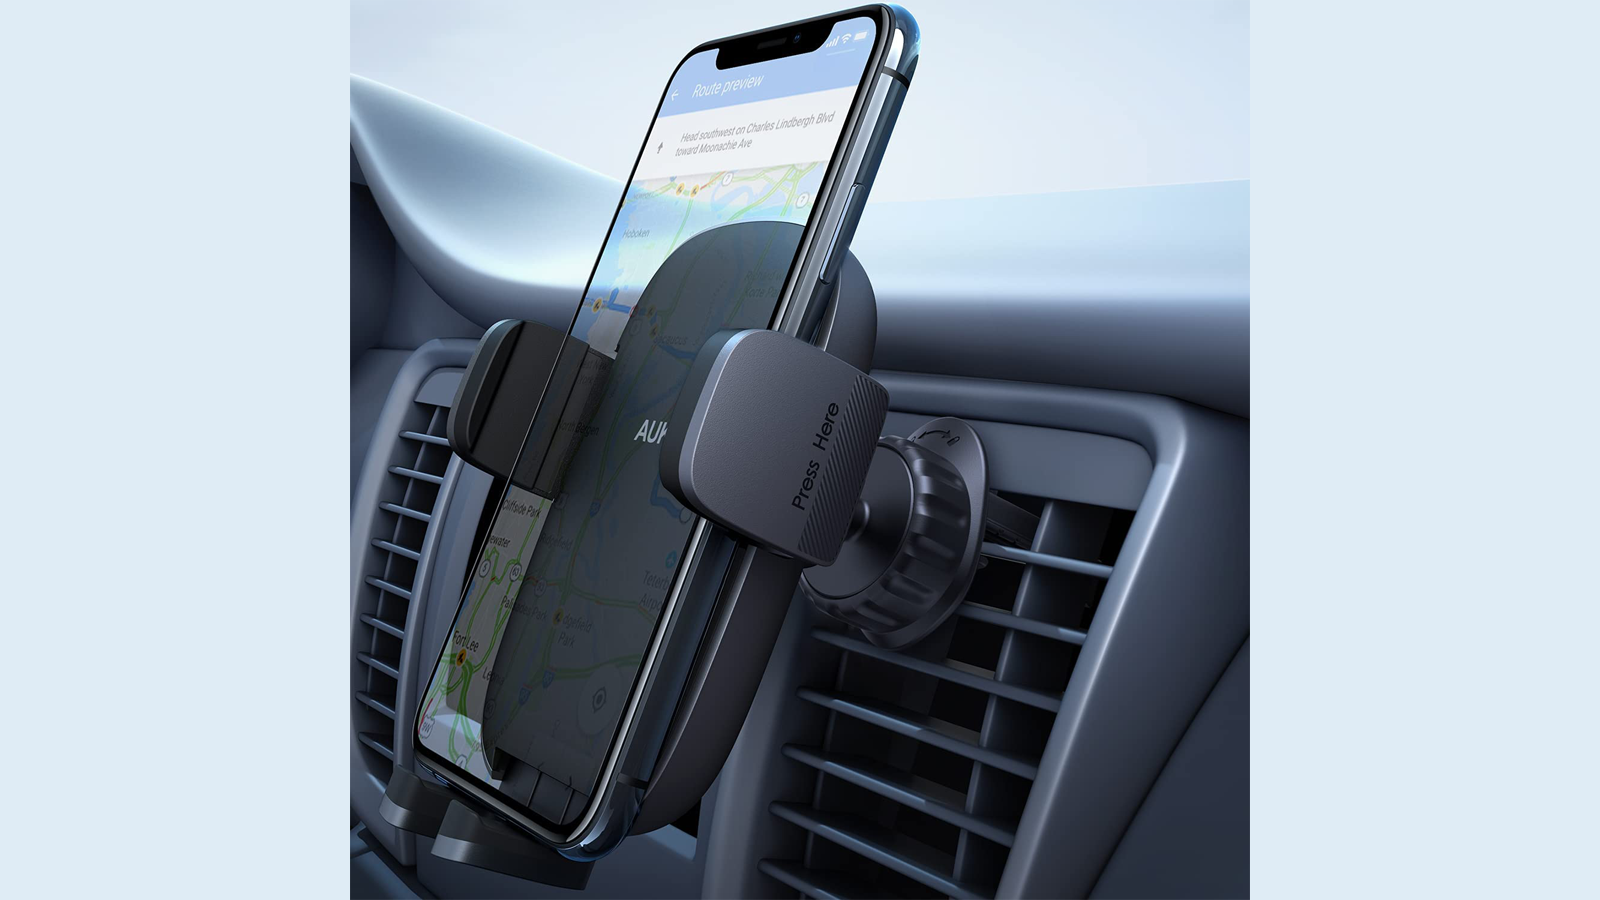 See Your Phone at a Glance with This Sleek Car Phone Holder